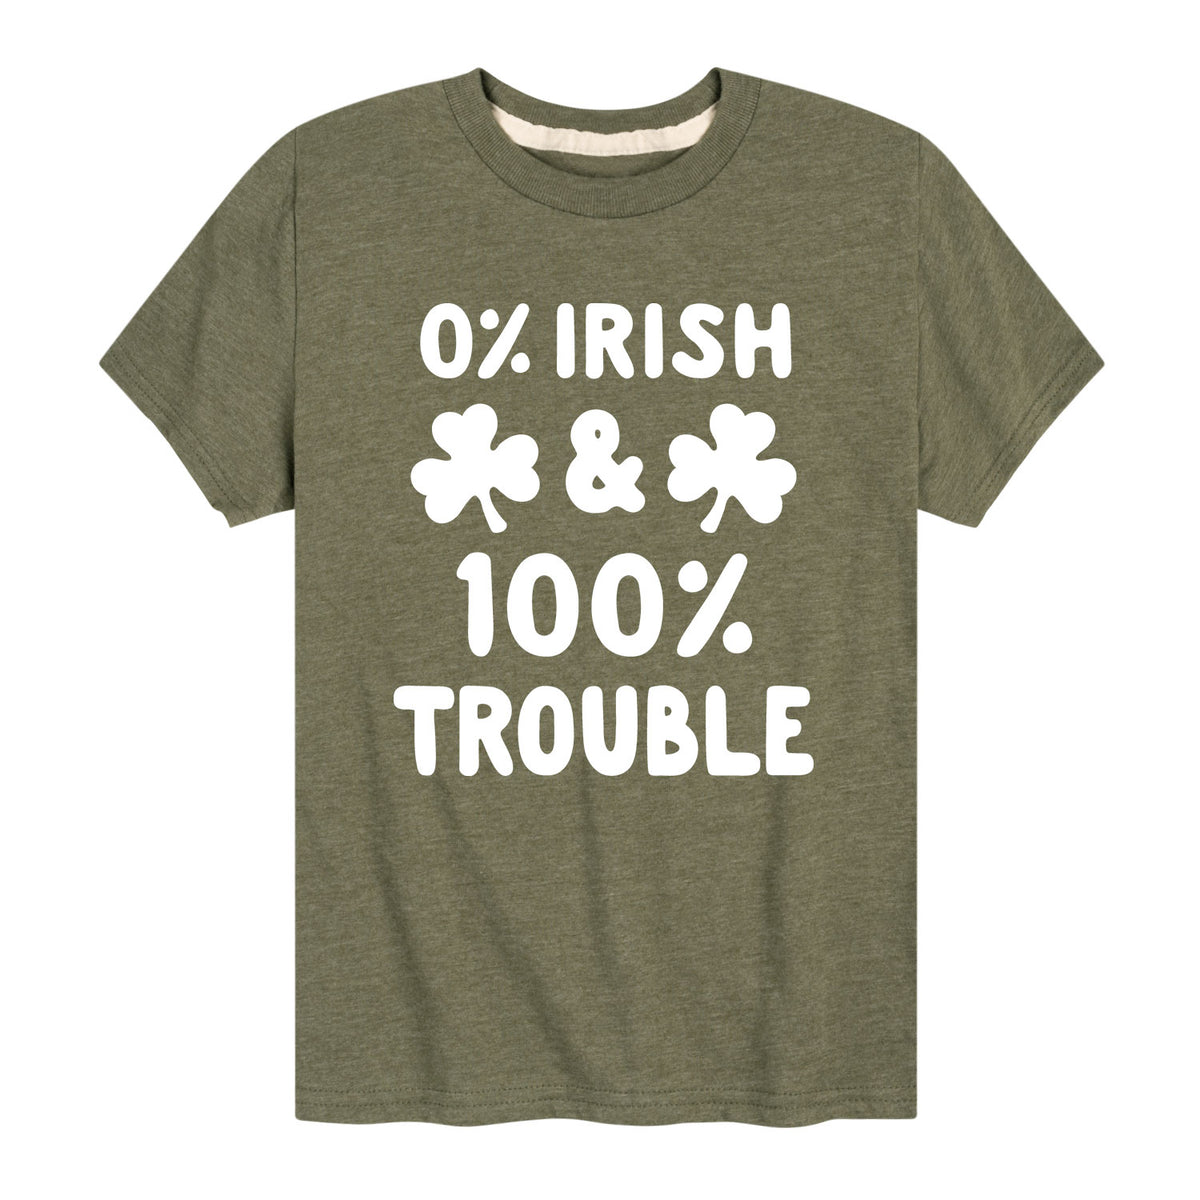 0 Percent Irish 100 Percent Trouble - Youth & Toddler Short Sleeve T-Shirt